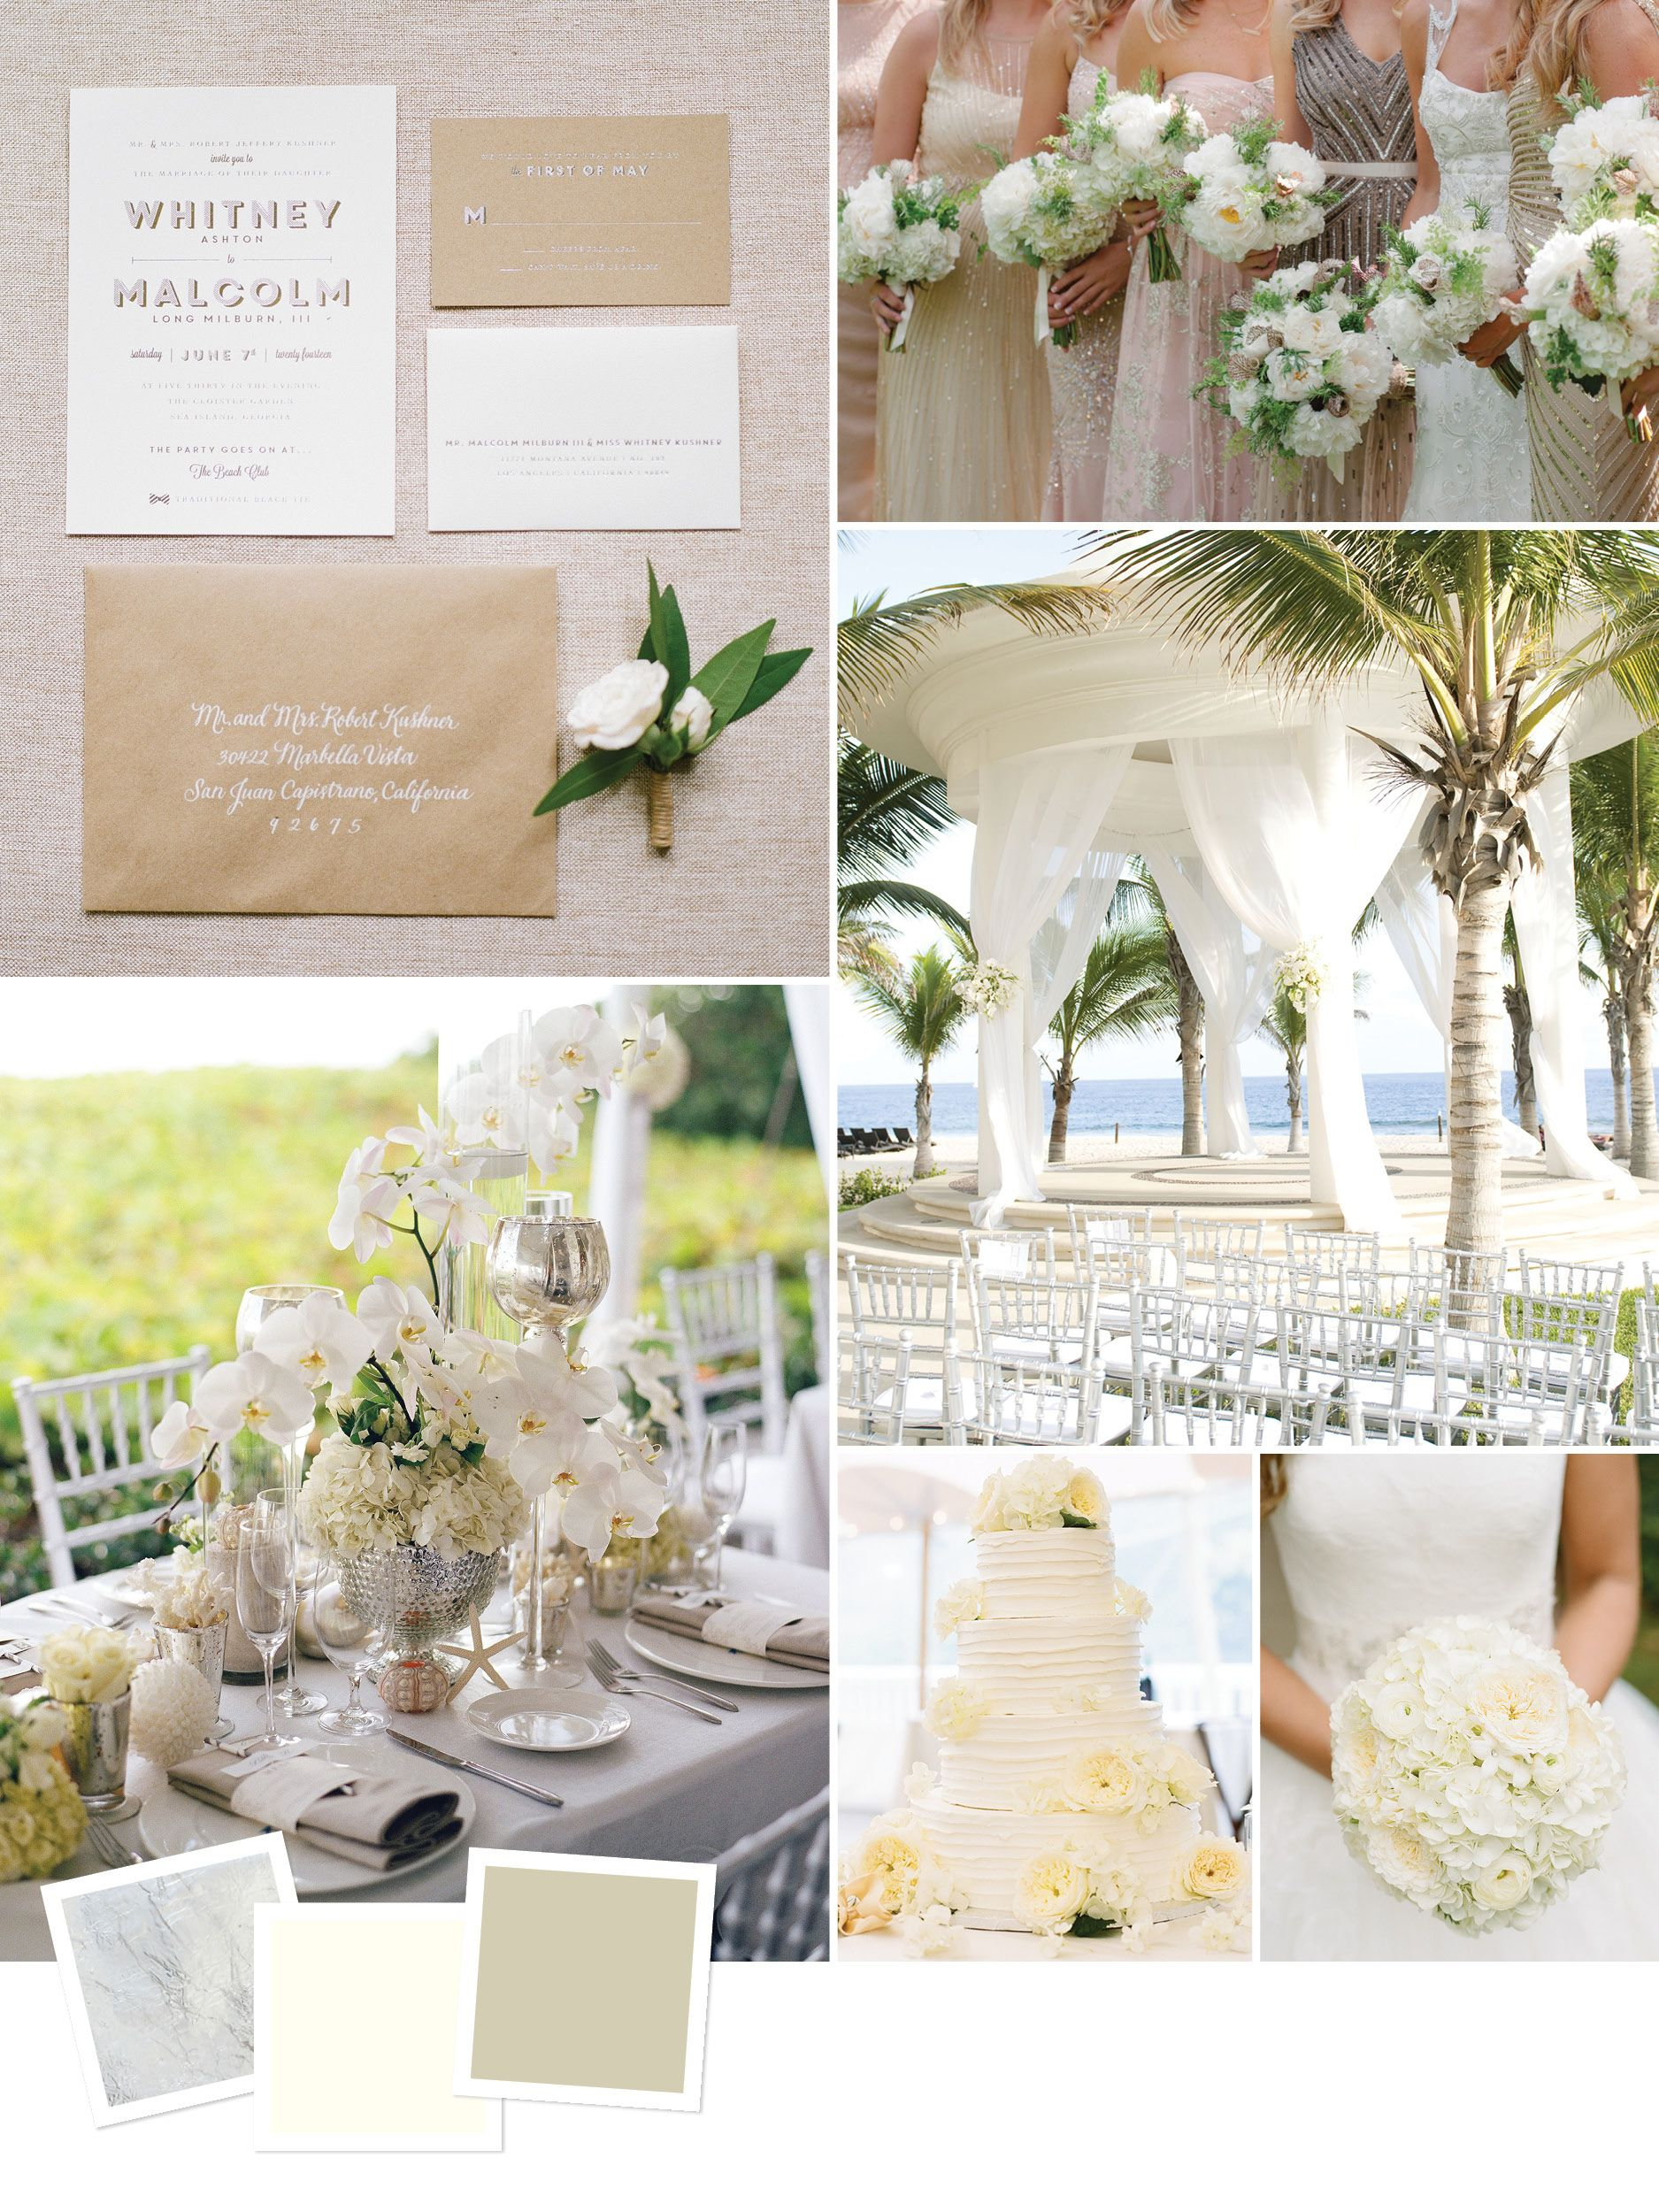 Elegant white monochrome beach wedding theme | Wedding inspiration ...